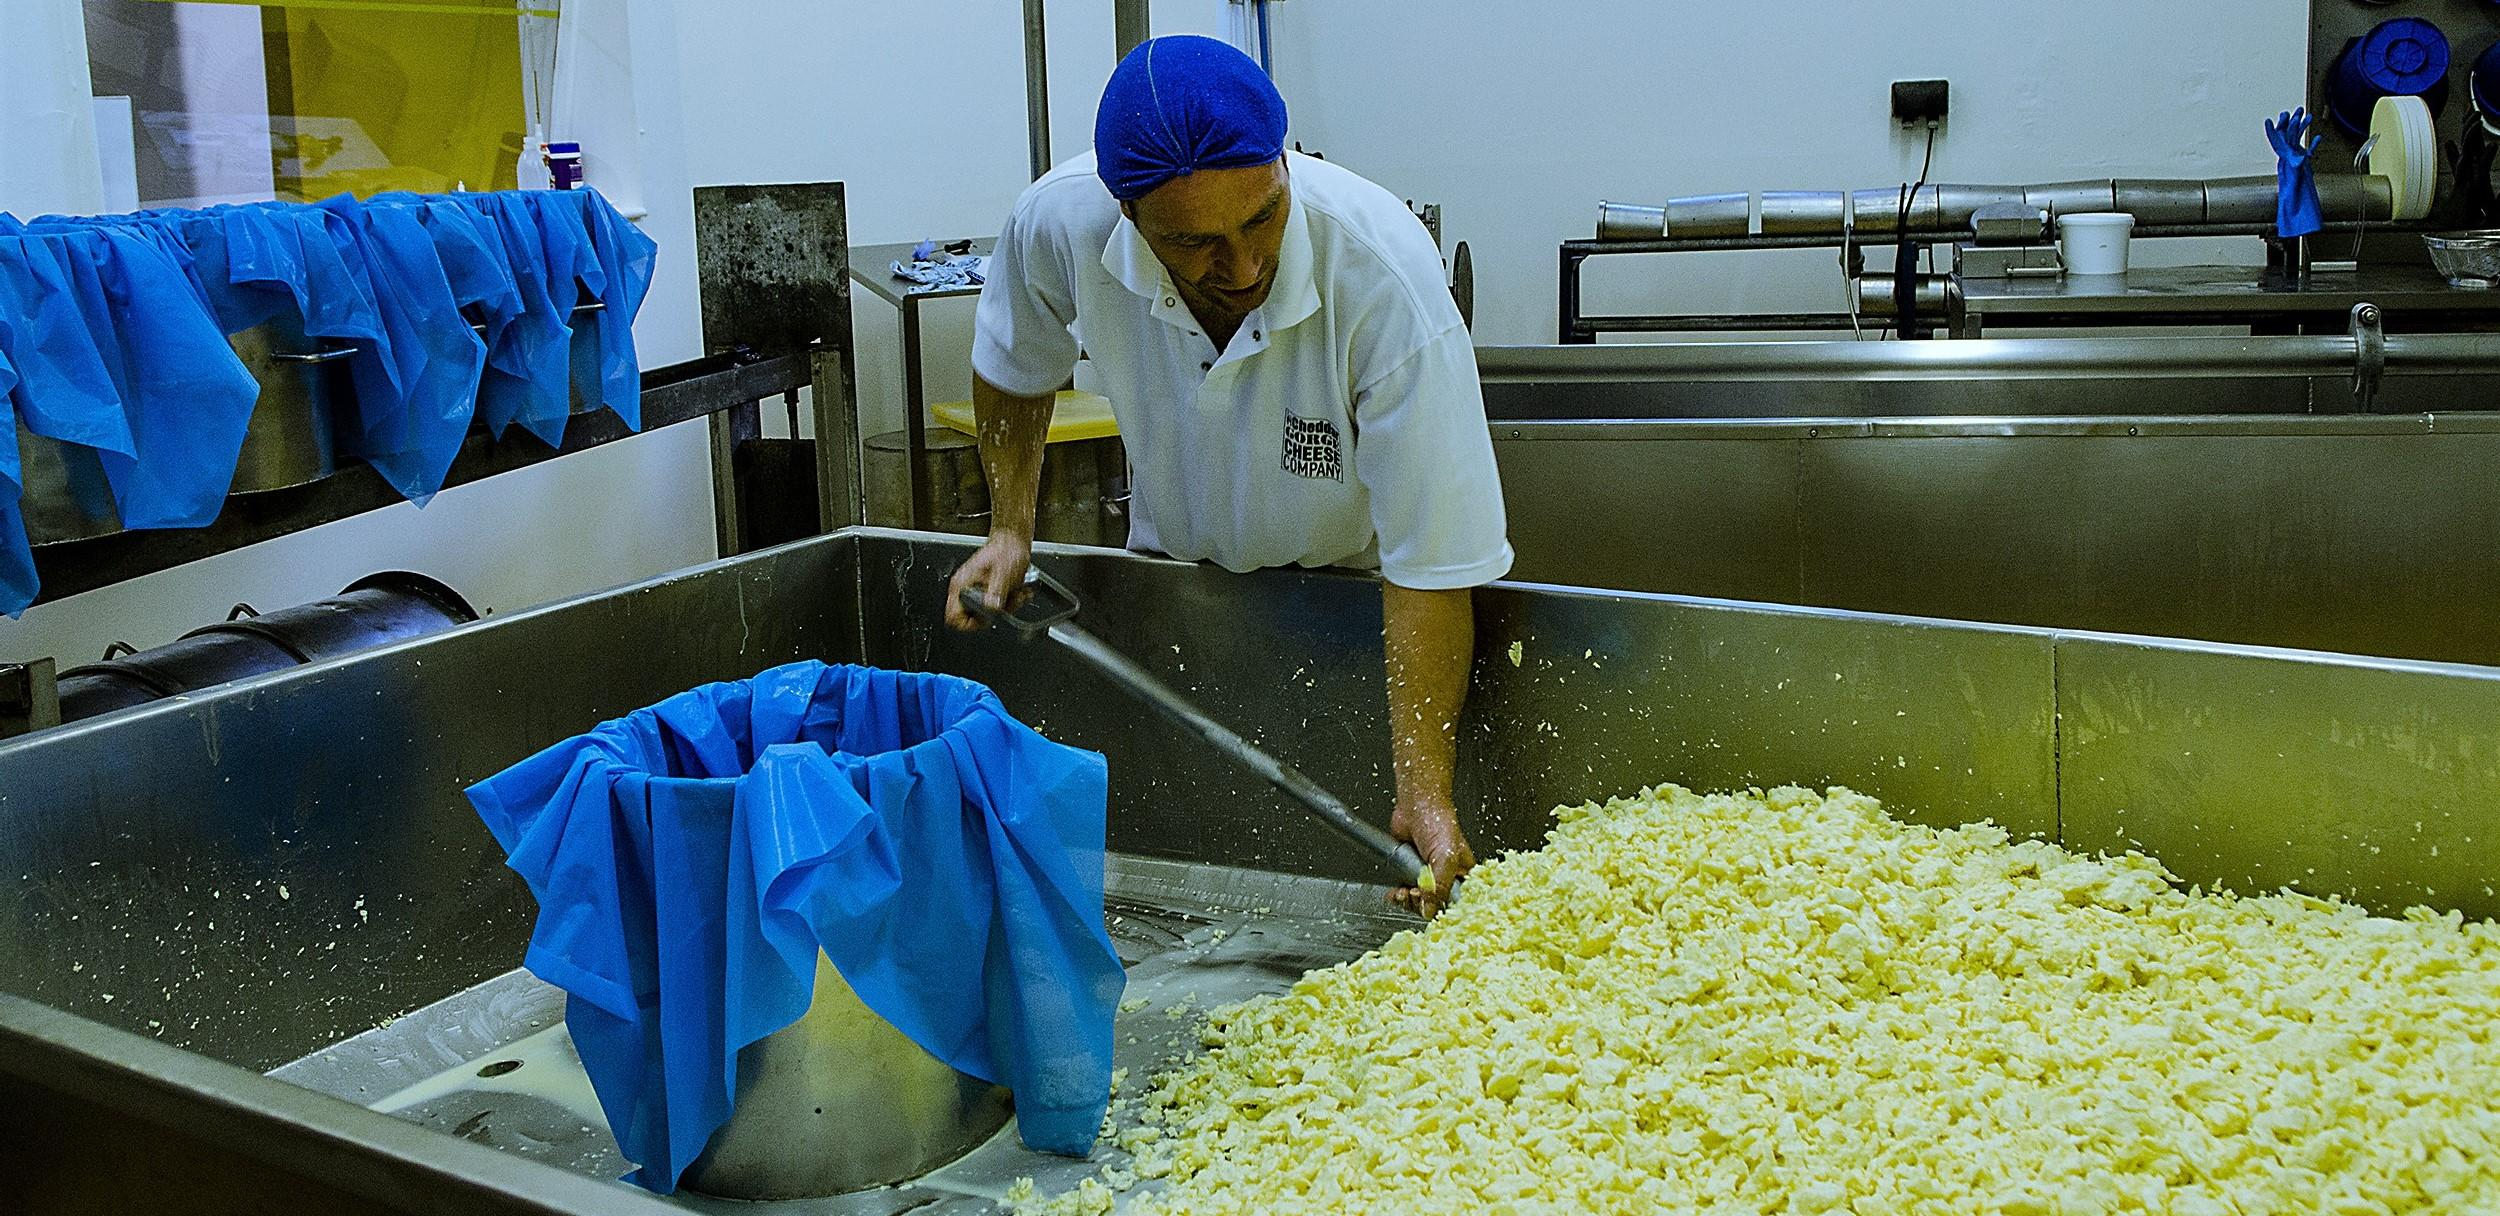 Visit to watch us make traditional cheddar cheese